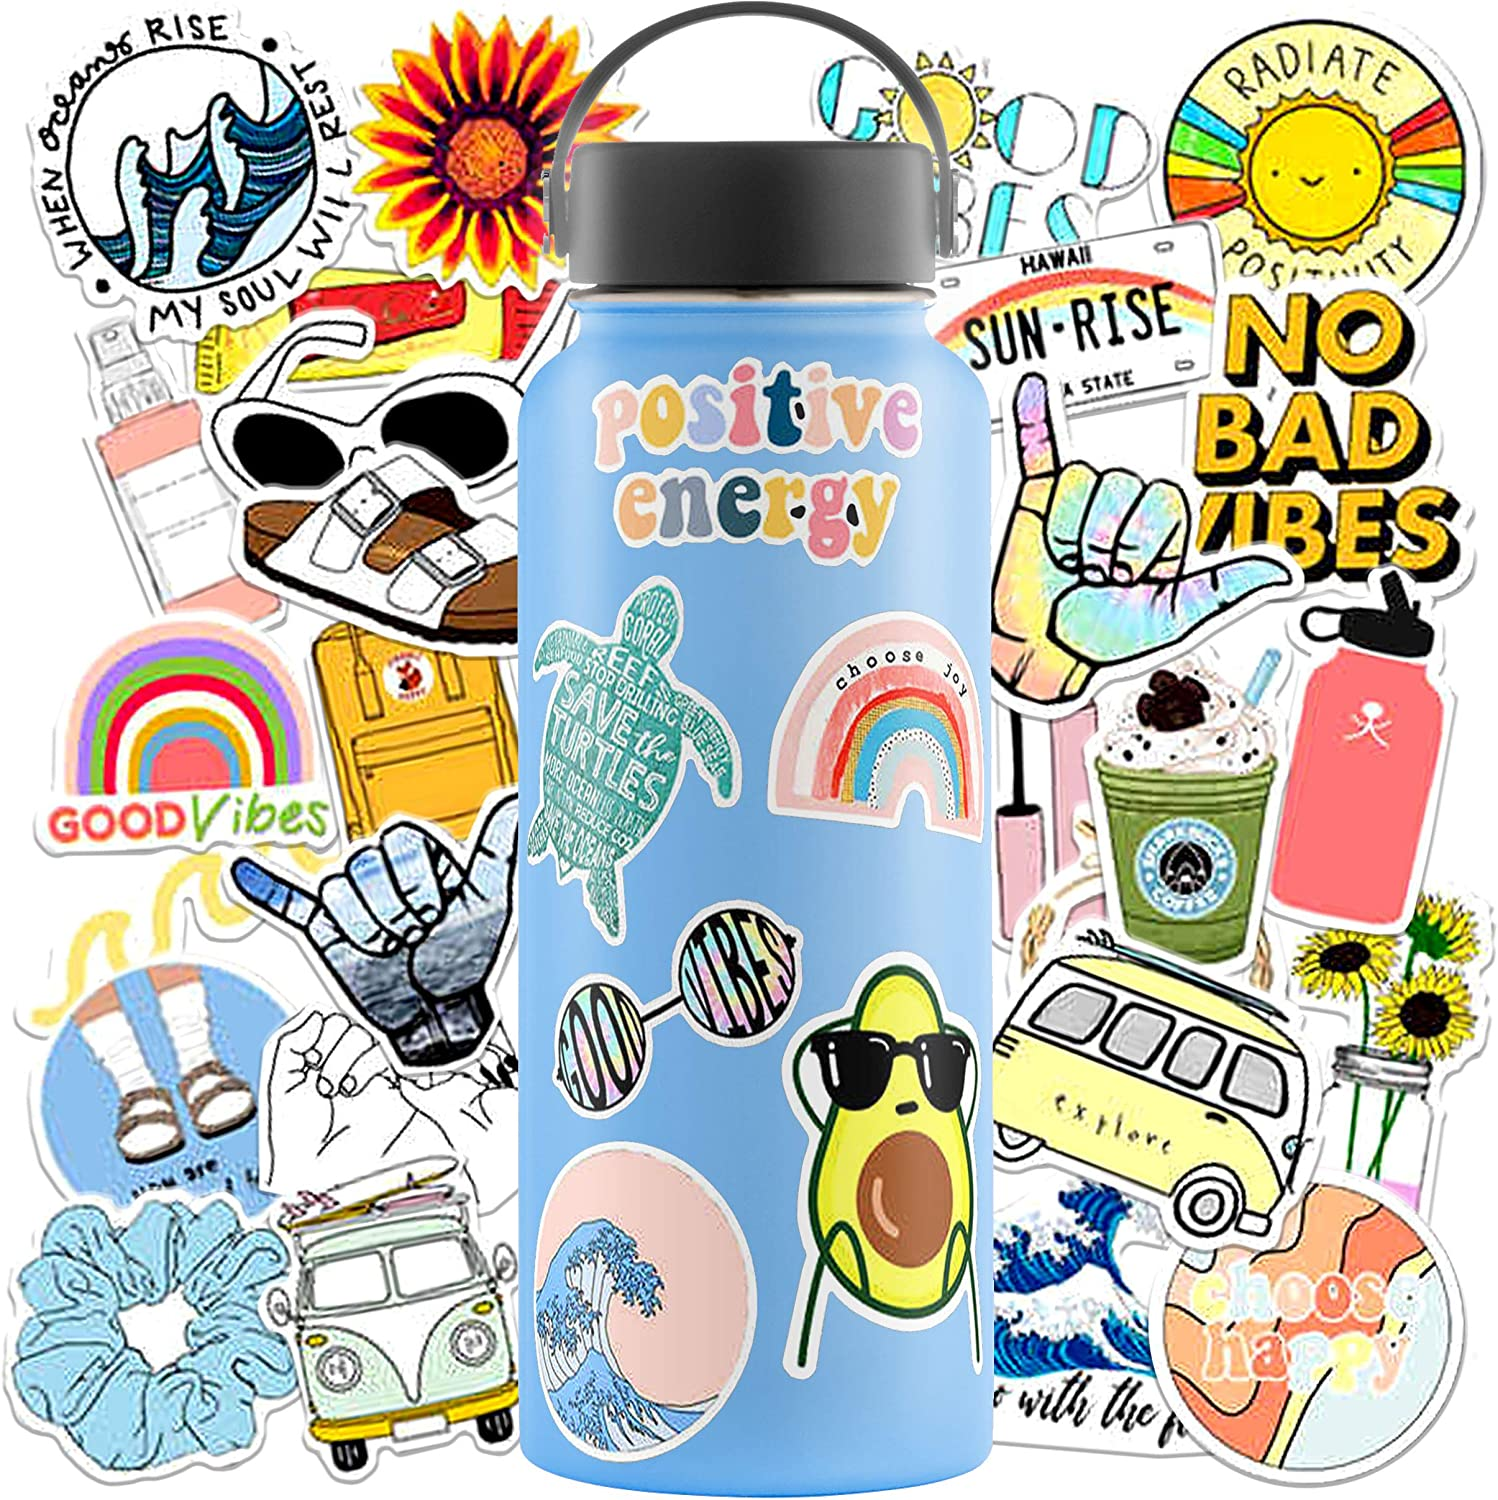 VSCO Stickers for Hydro Flask Stickers (35 Pack) - Waterproof VSCO Stickers for Hydroflask, Laptop Stickers - Aesthetic Stickers for Water Bottles - Cute Vinyl Stickers for Hydroflasks for VSCO Girl